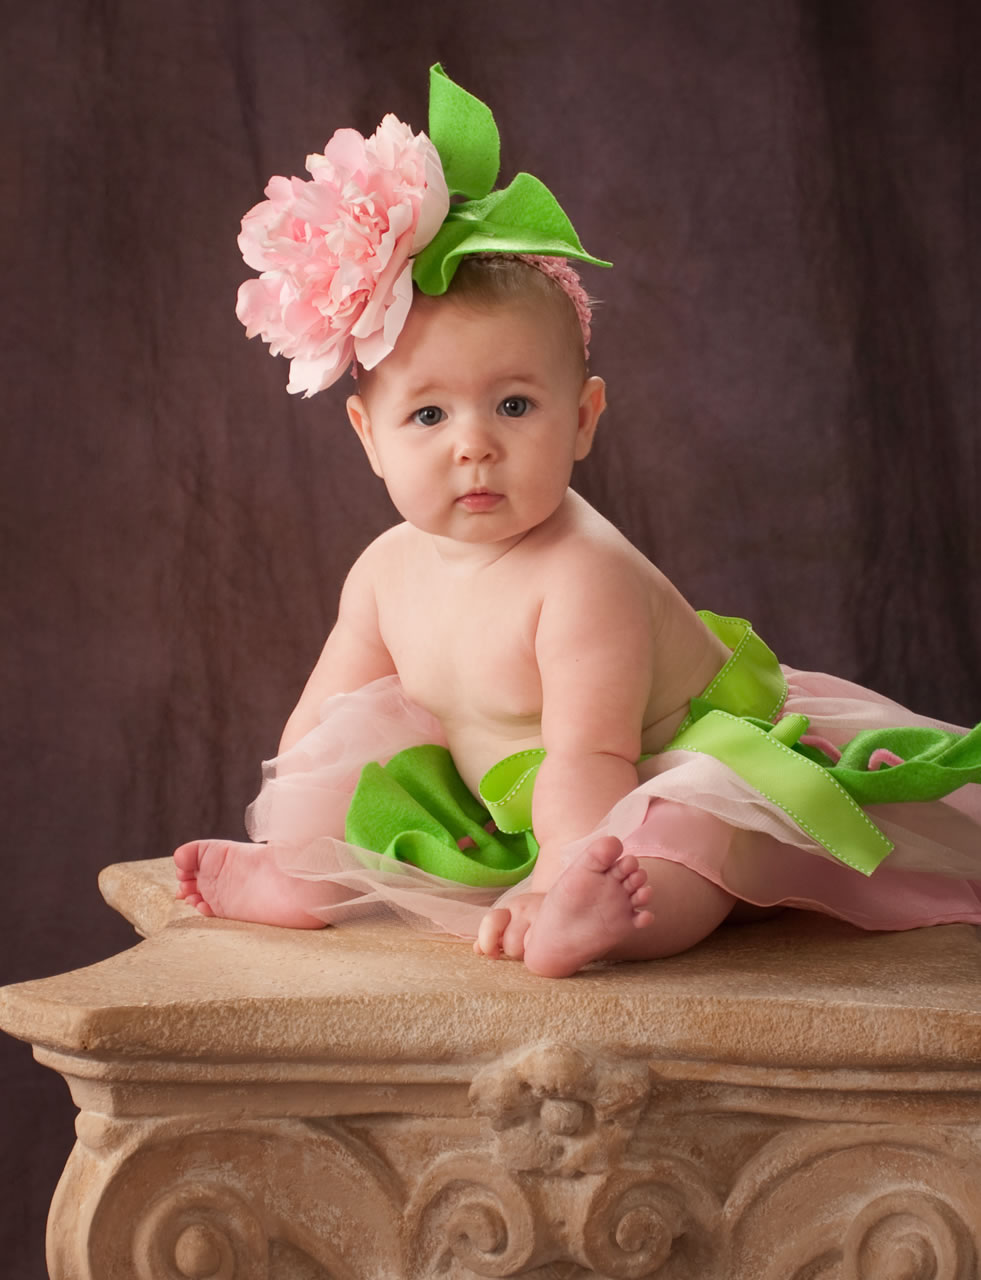 Infant on column in flower hat - Ginger Wagoner, Photographer, Photosynthesis